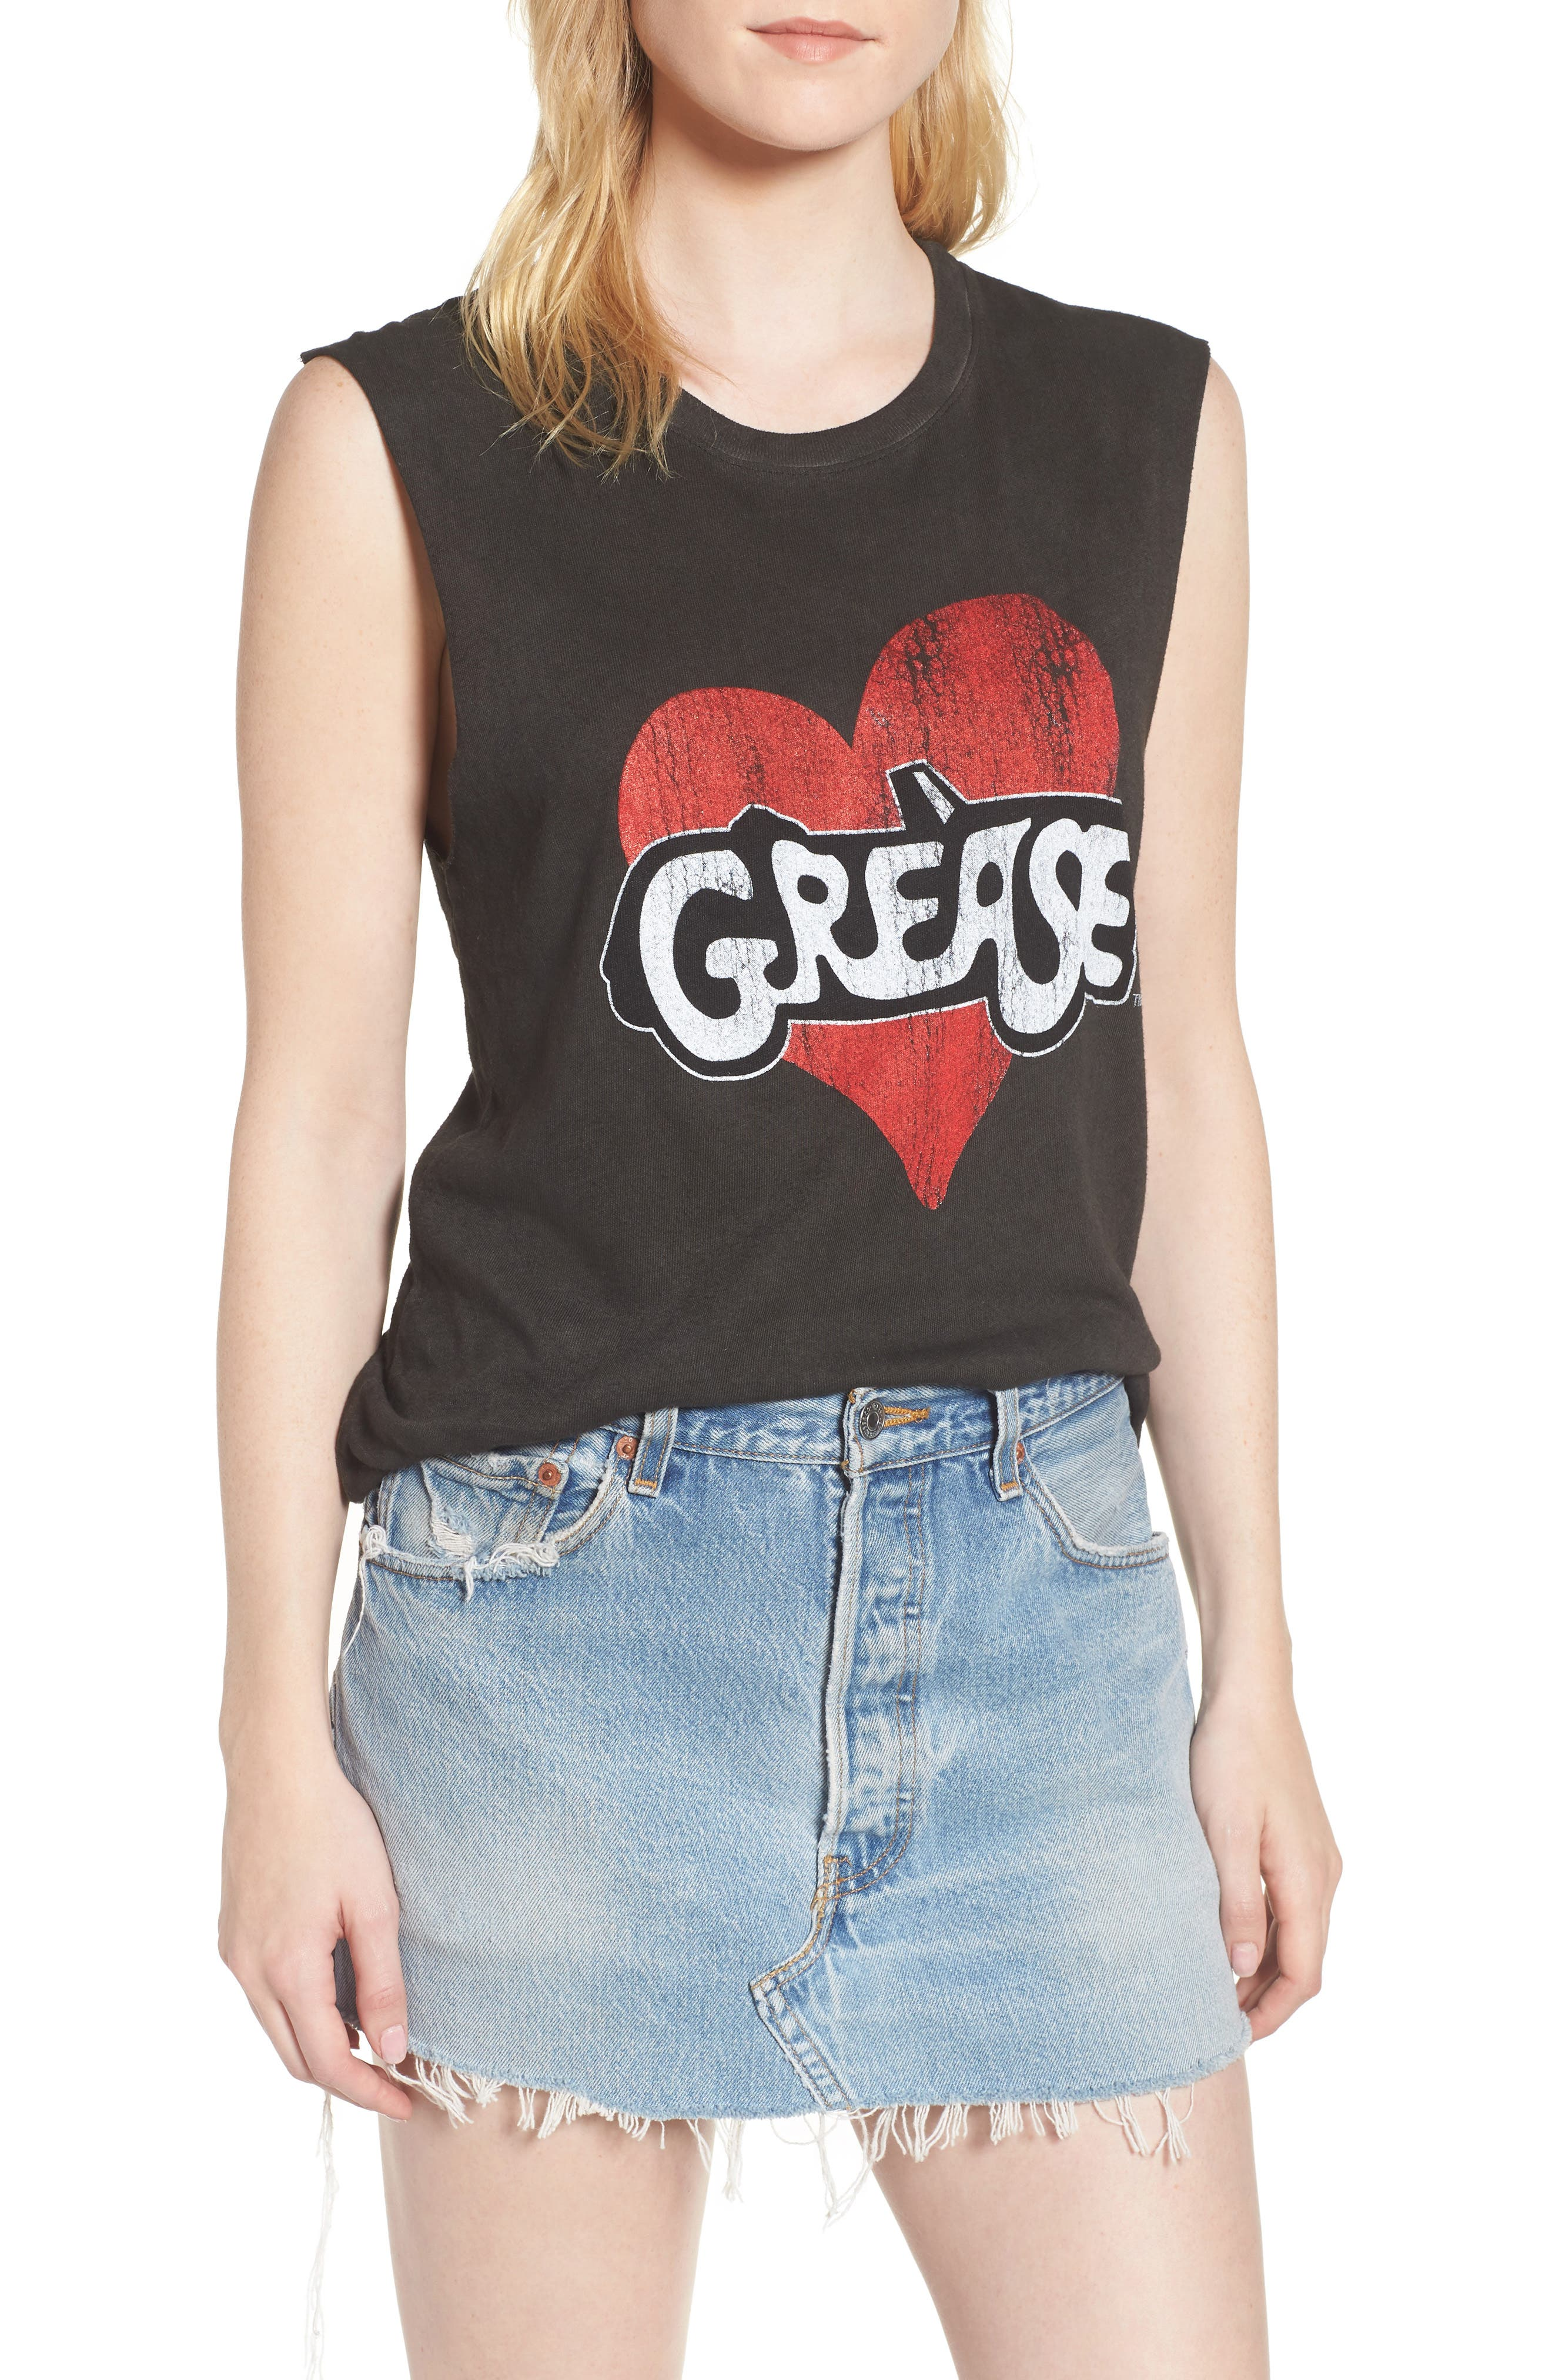 x Grease Muscle Tee,                         Main,                         color, 001